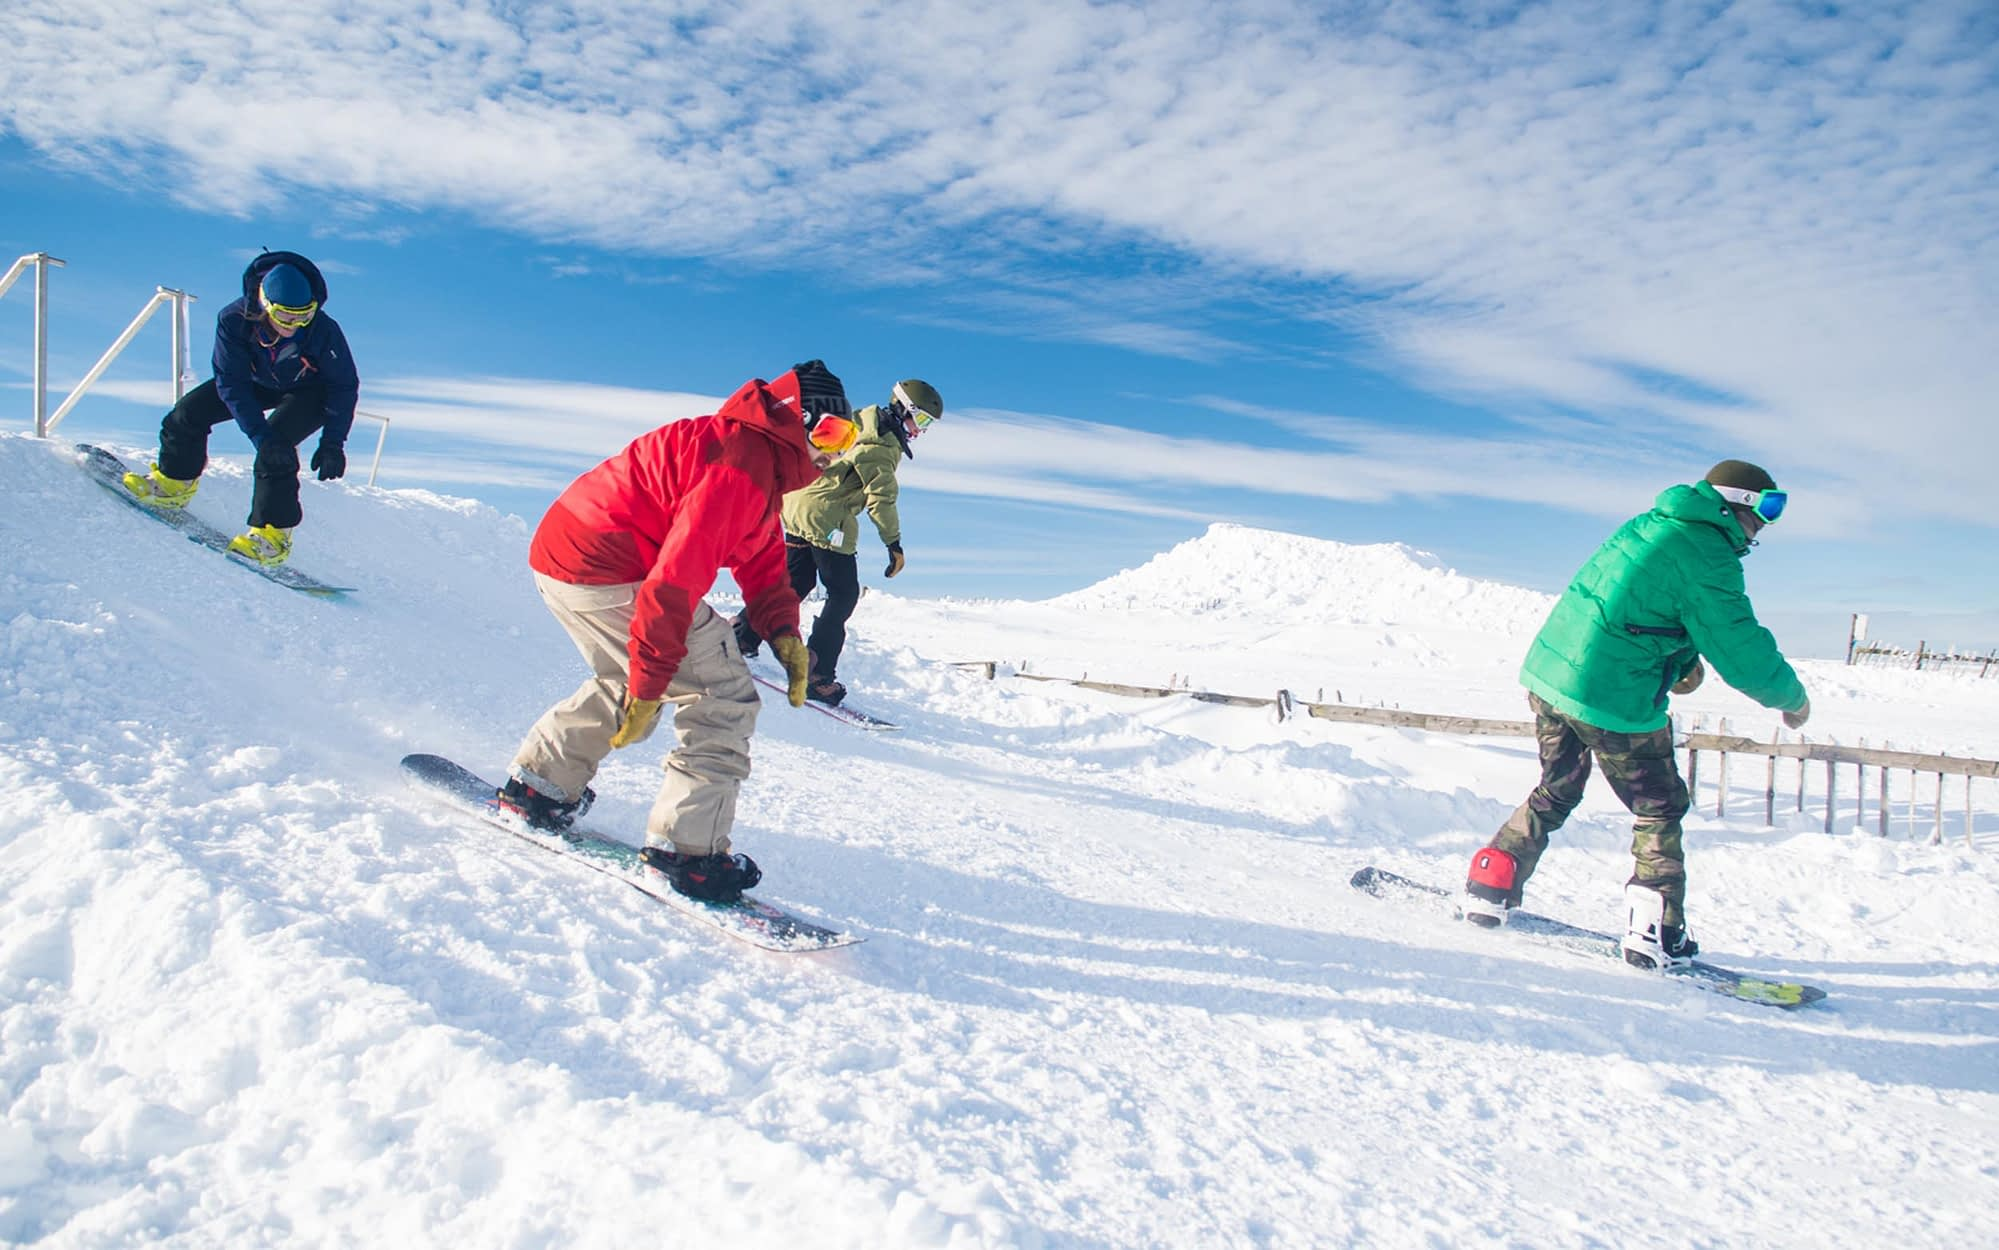 The lecht 2090: Skiing in Scotland is just great!